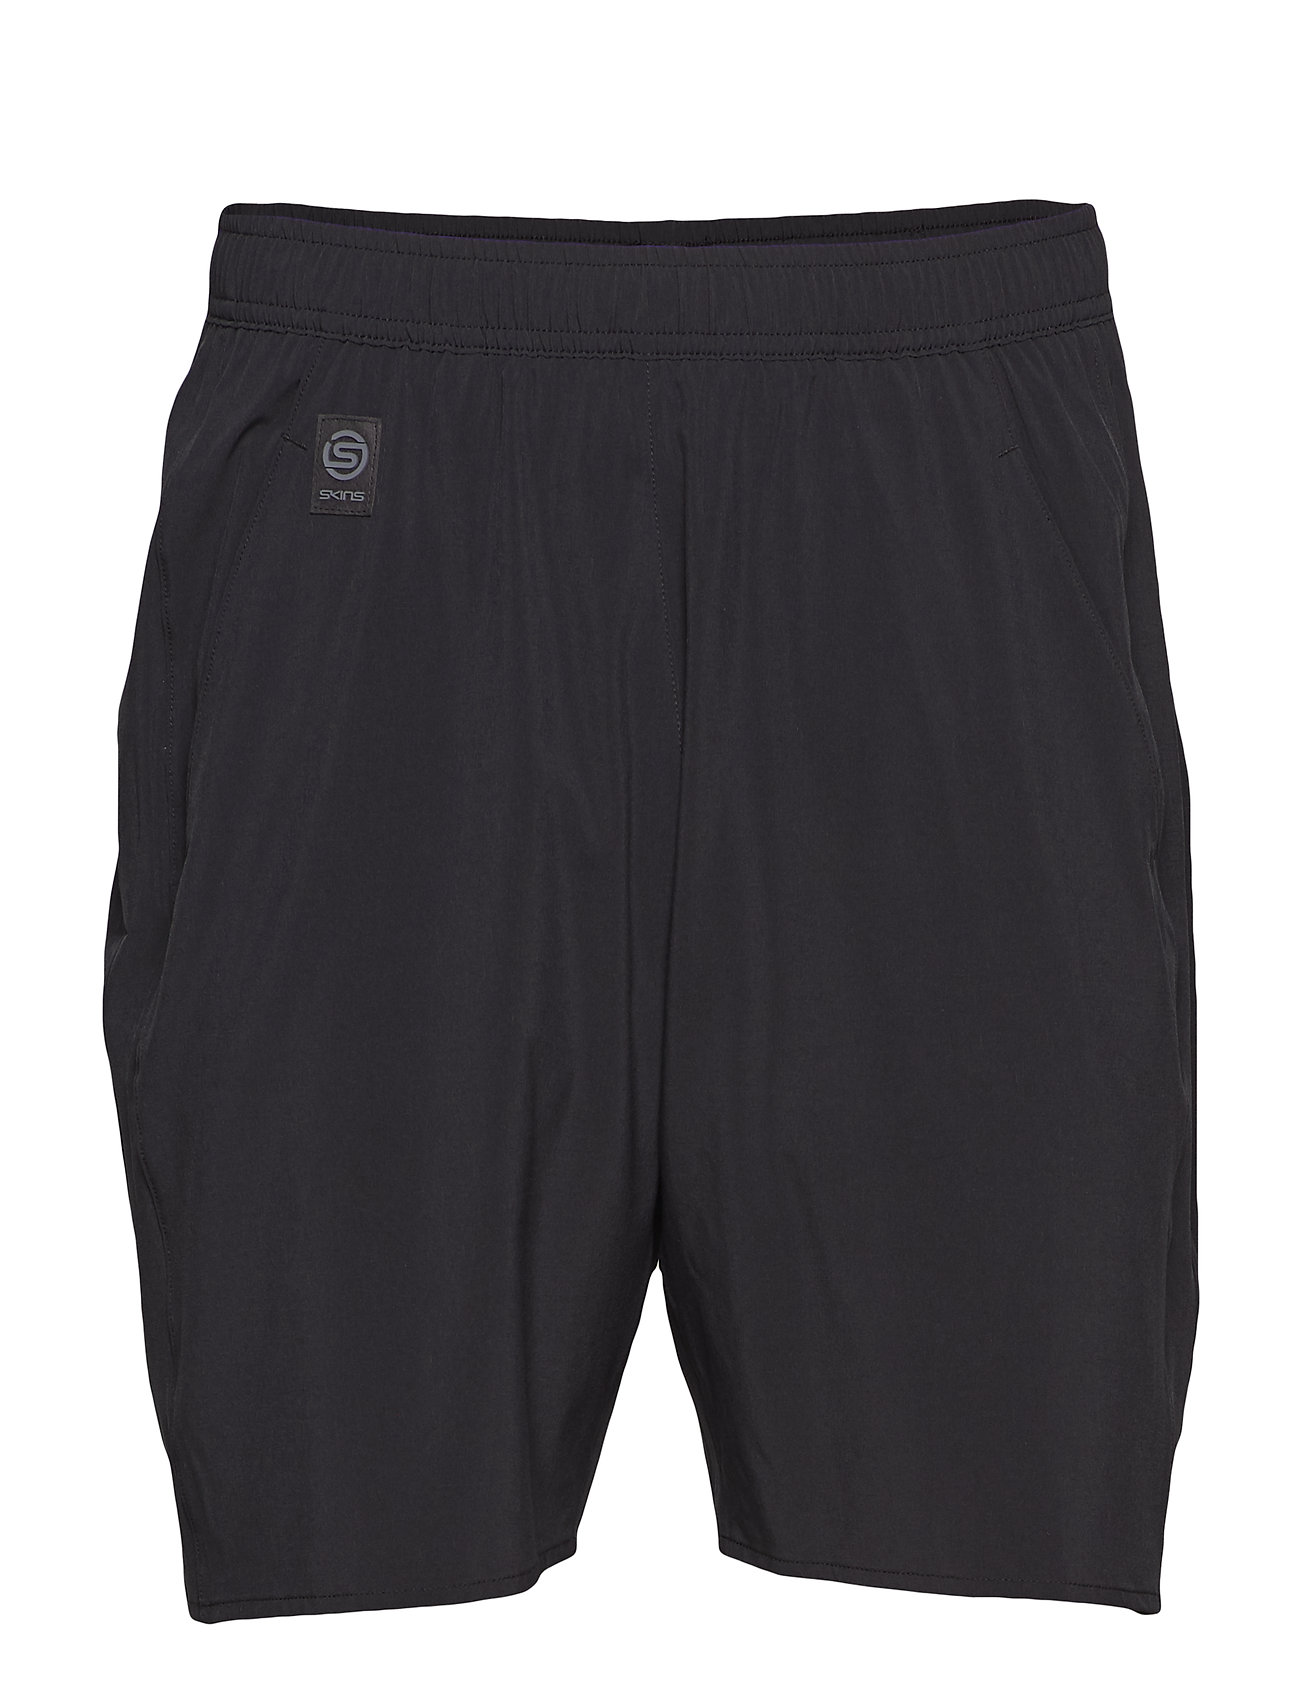 Skins Activewear Square Mens Short 7